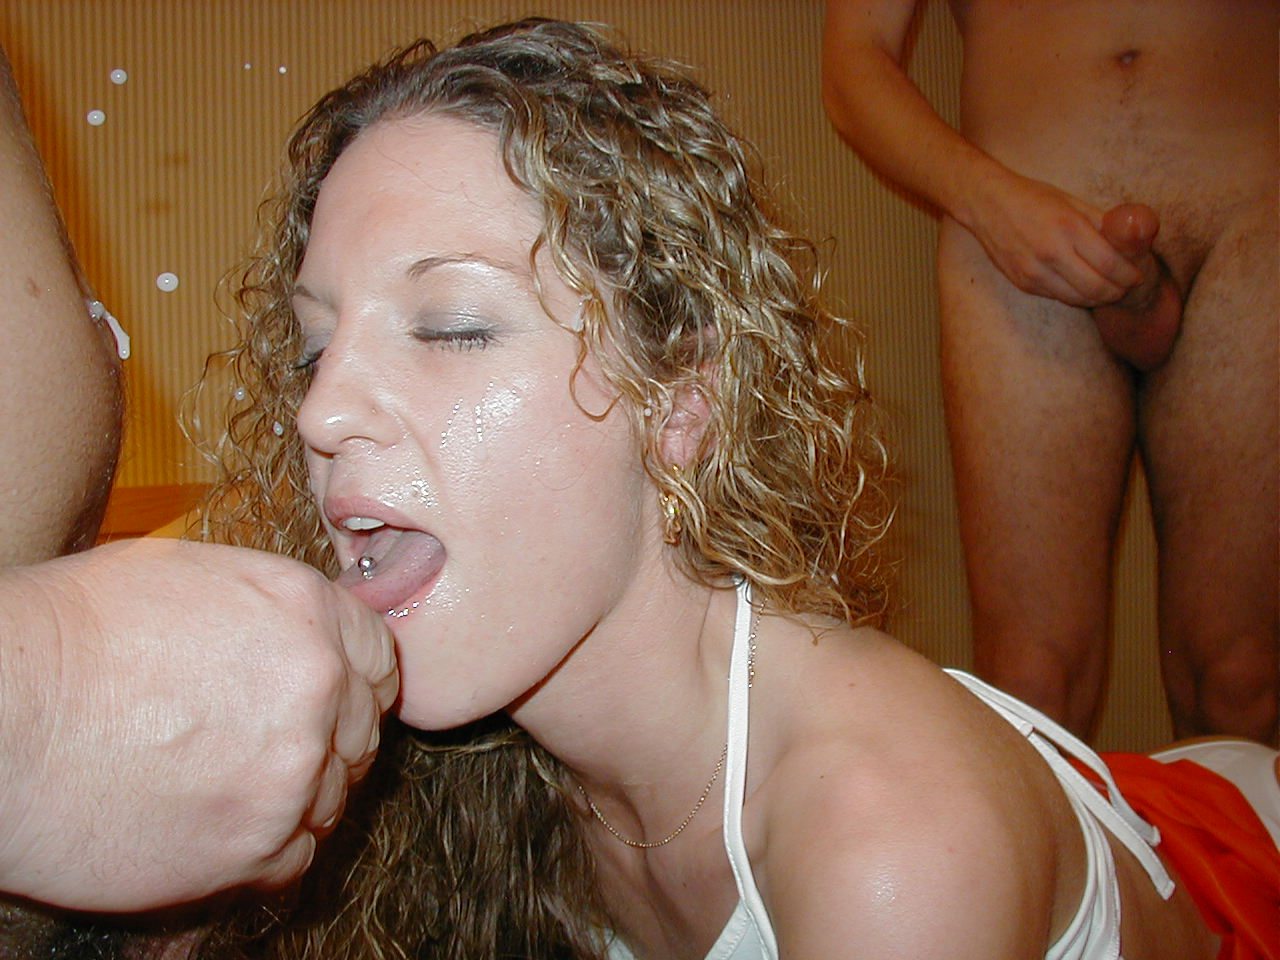 consider, pussy hole gets lucky and is penetrated doggystyle rather valuable opinion